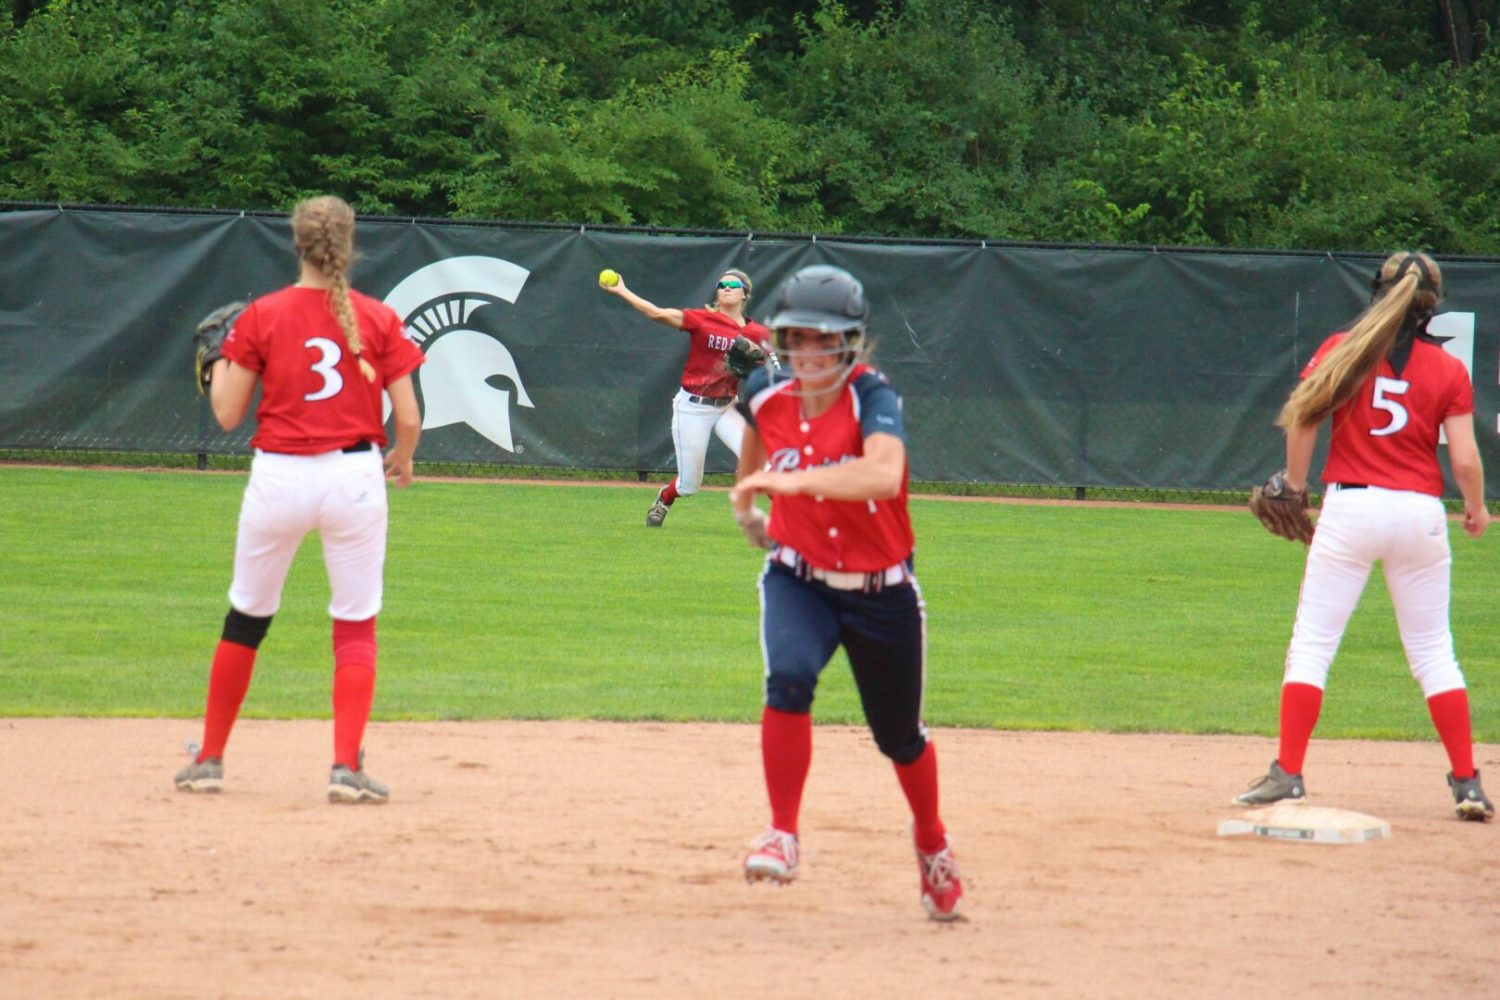 The Holton softball team's 37-game winning streak ends with a 4-1 loss in the Division 4 state semifinals